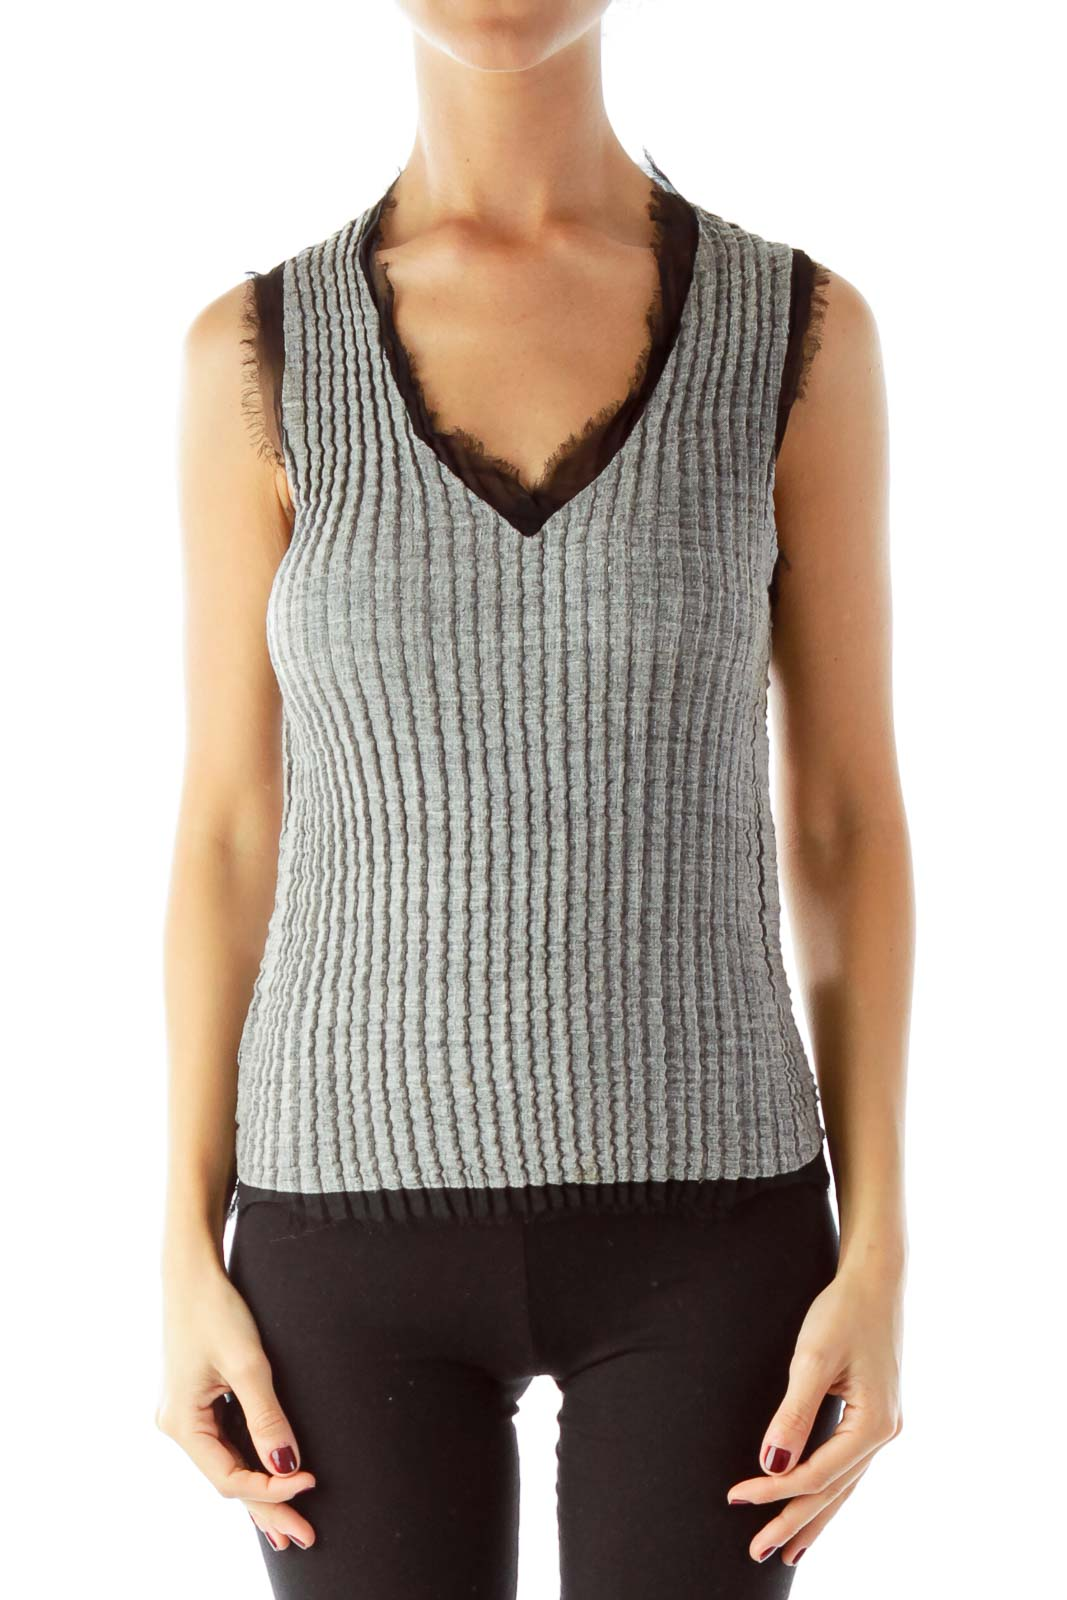 Gray Fitted Tank Top With Black Fringe Front